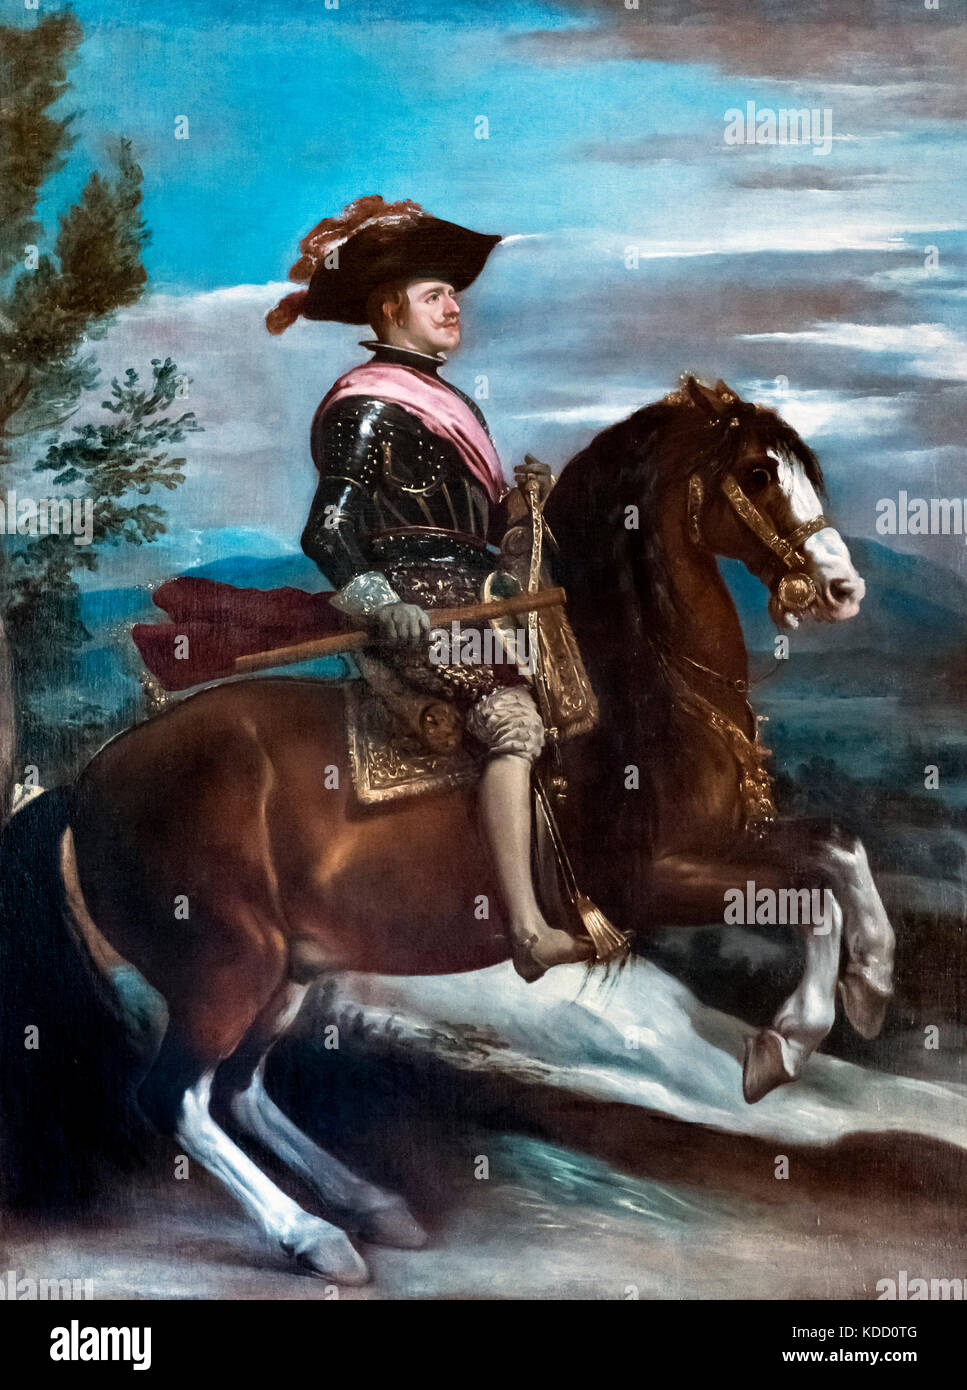 Philip IV of Spain. Equestrian portrait of King Philip IV of Spain by Diego Velazquez, oil on canvas, c.1635 - Stock Image